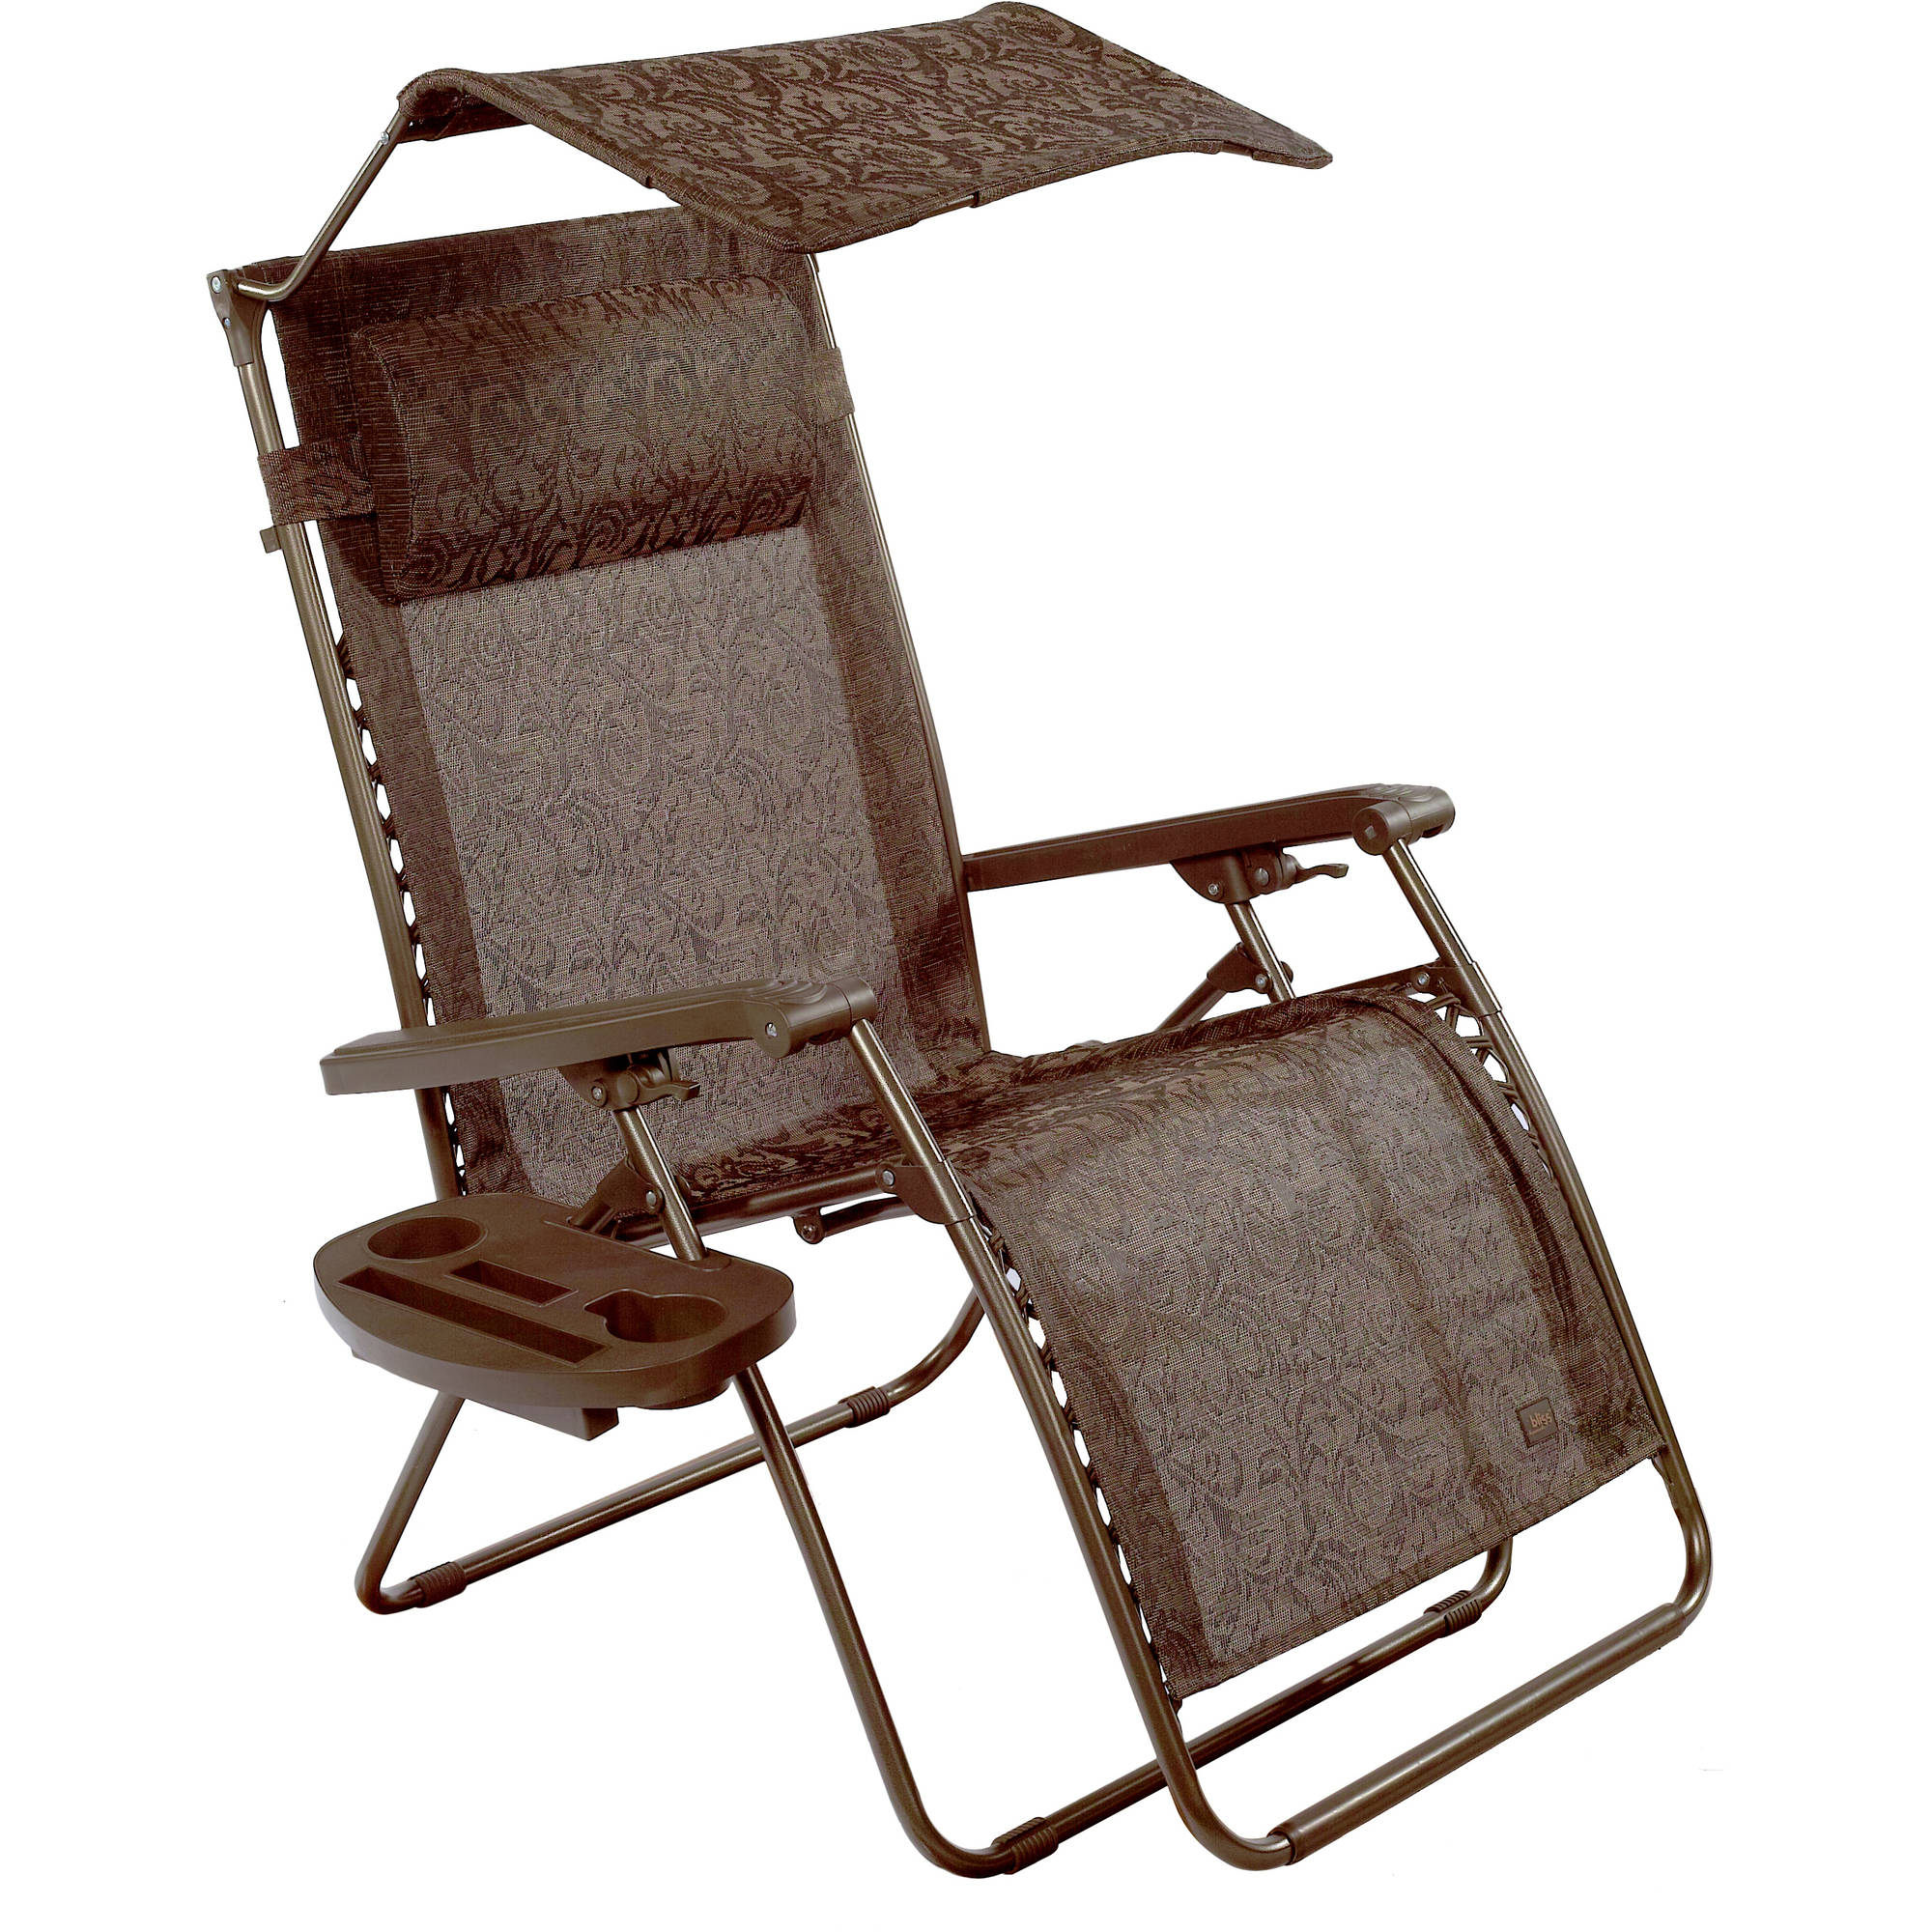 zero gravity patio chair xl zefo swing bliss hammocks deluxe gravity-free recliner - walmart.com